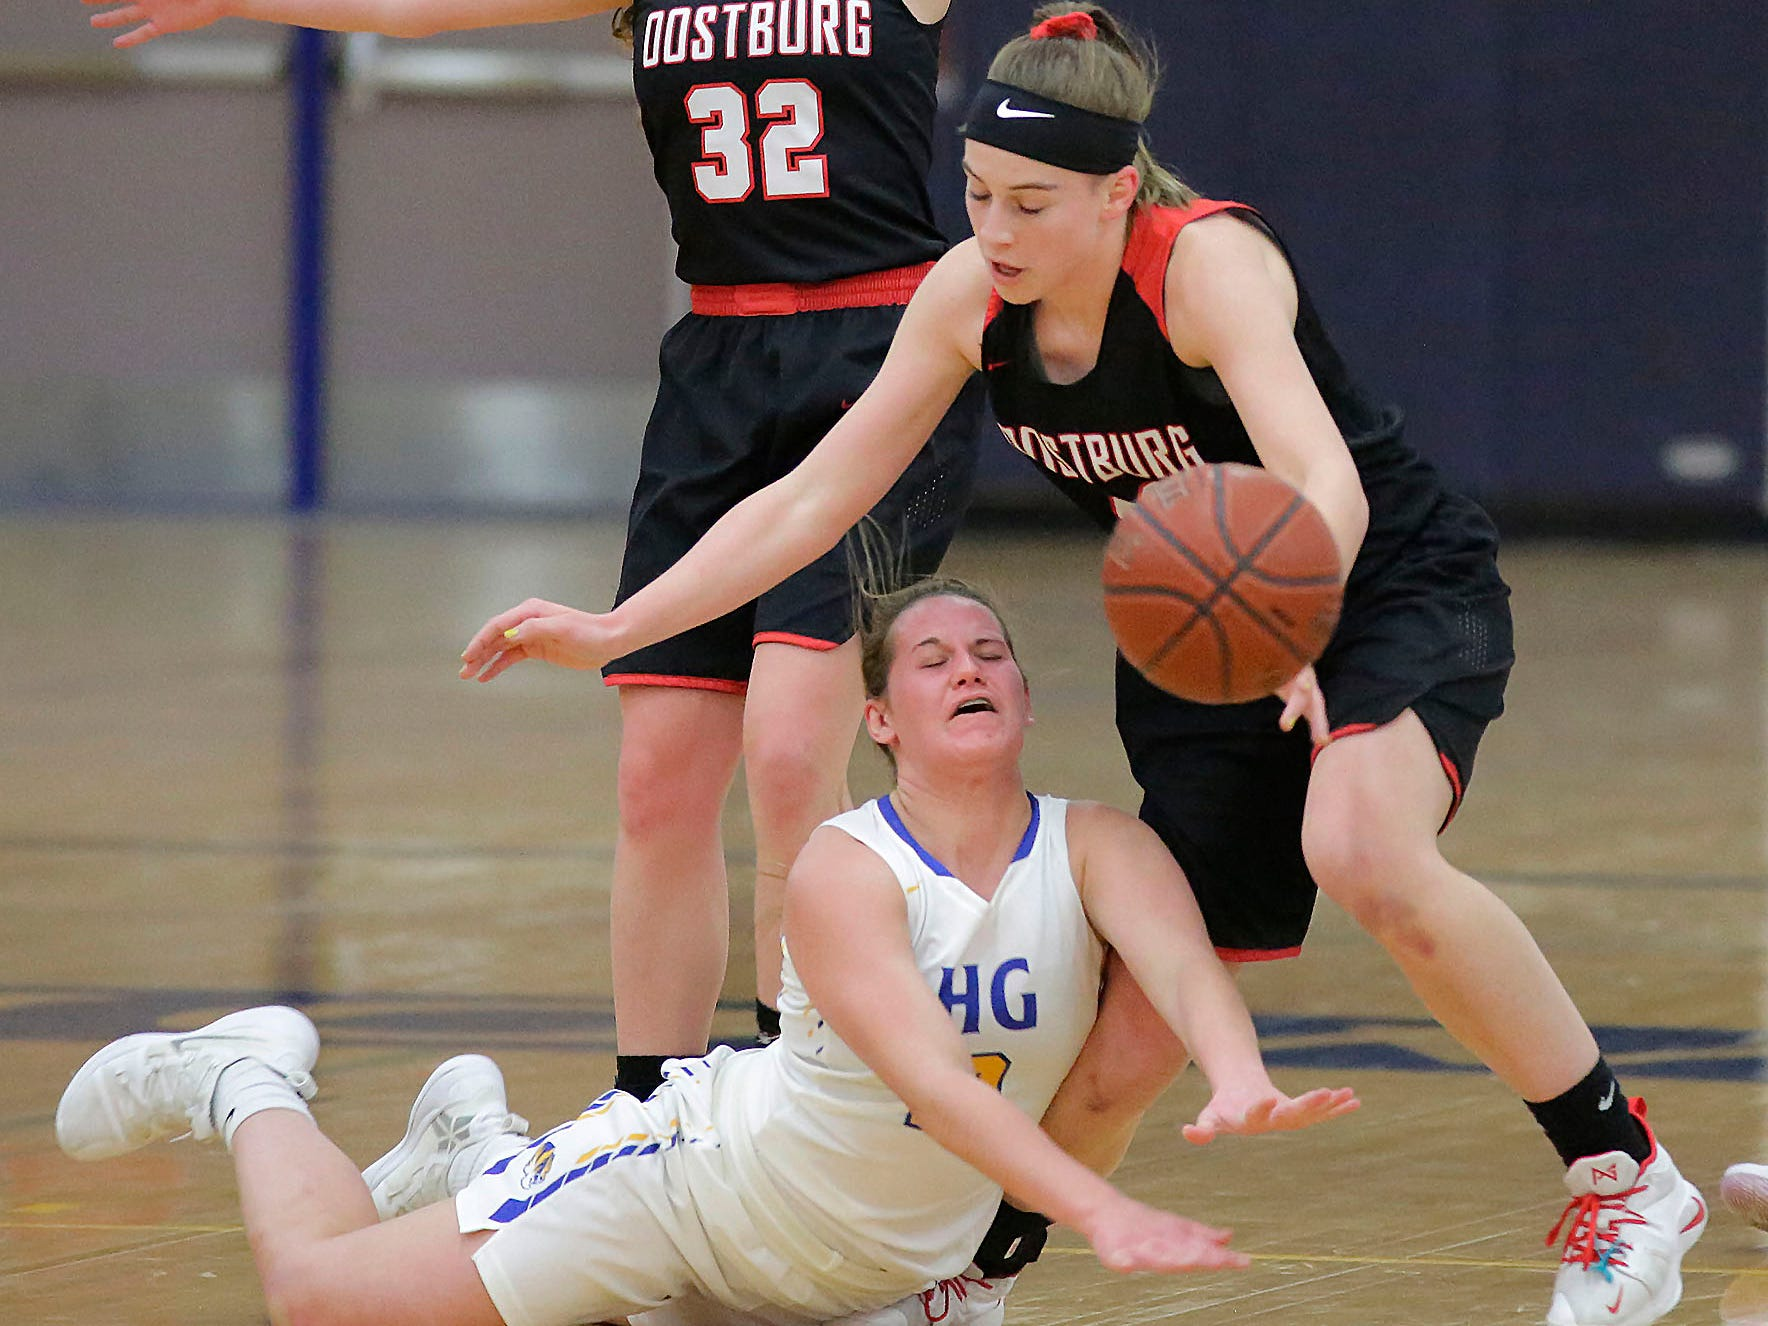 Howards Grove's Zayla Mueller (2) falls as she lunges towards the ball against Oostburg, Saturday, February 23, 2019, at Howards Grove, Wis.